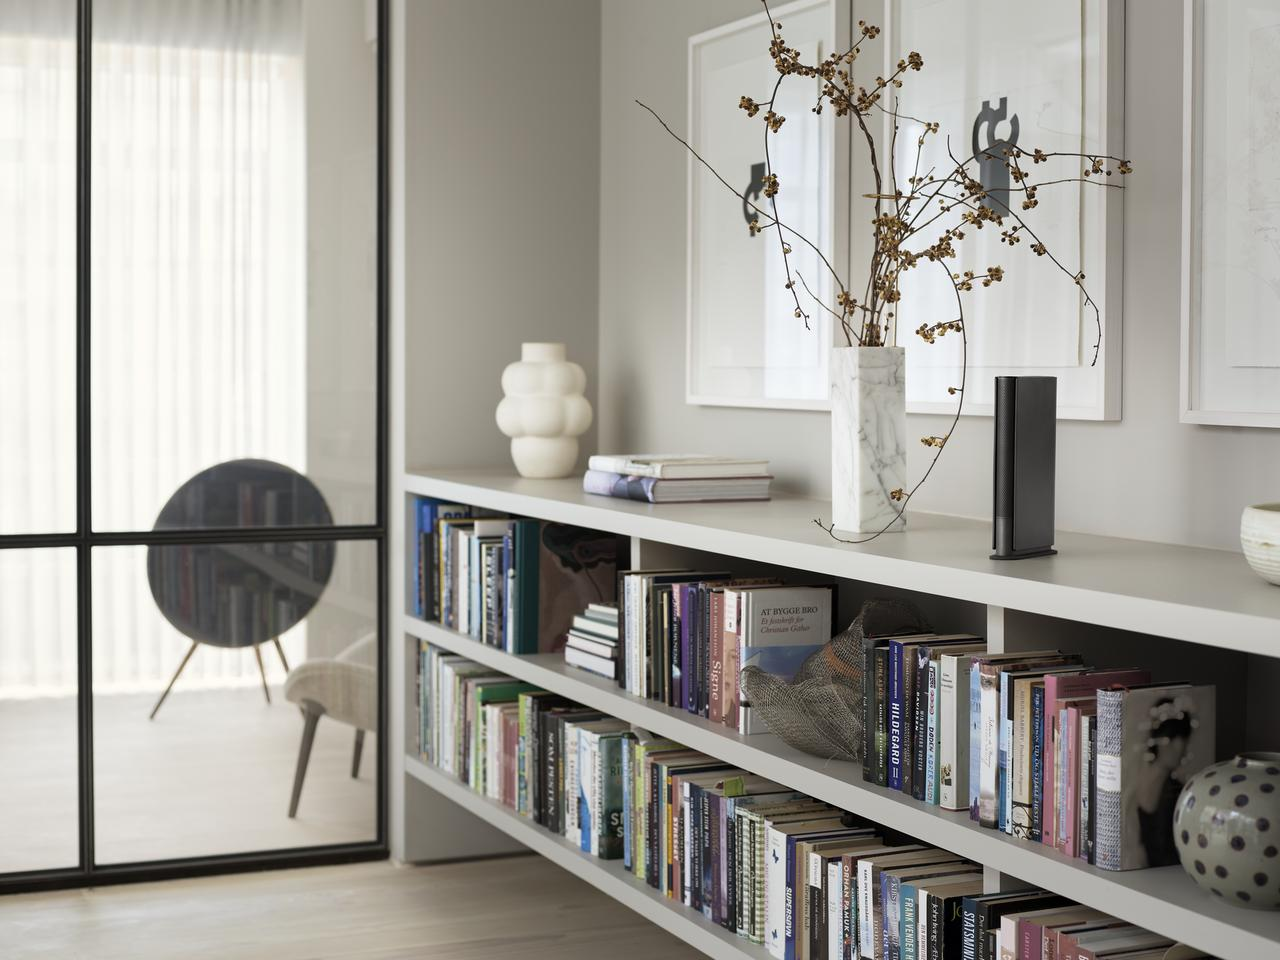 Though slim, B&O says that the Beosound Emerge will fill a room with sound